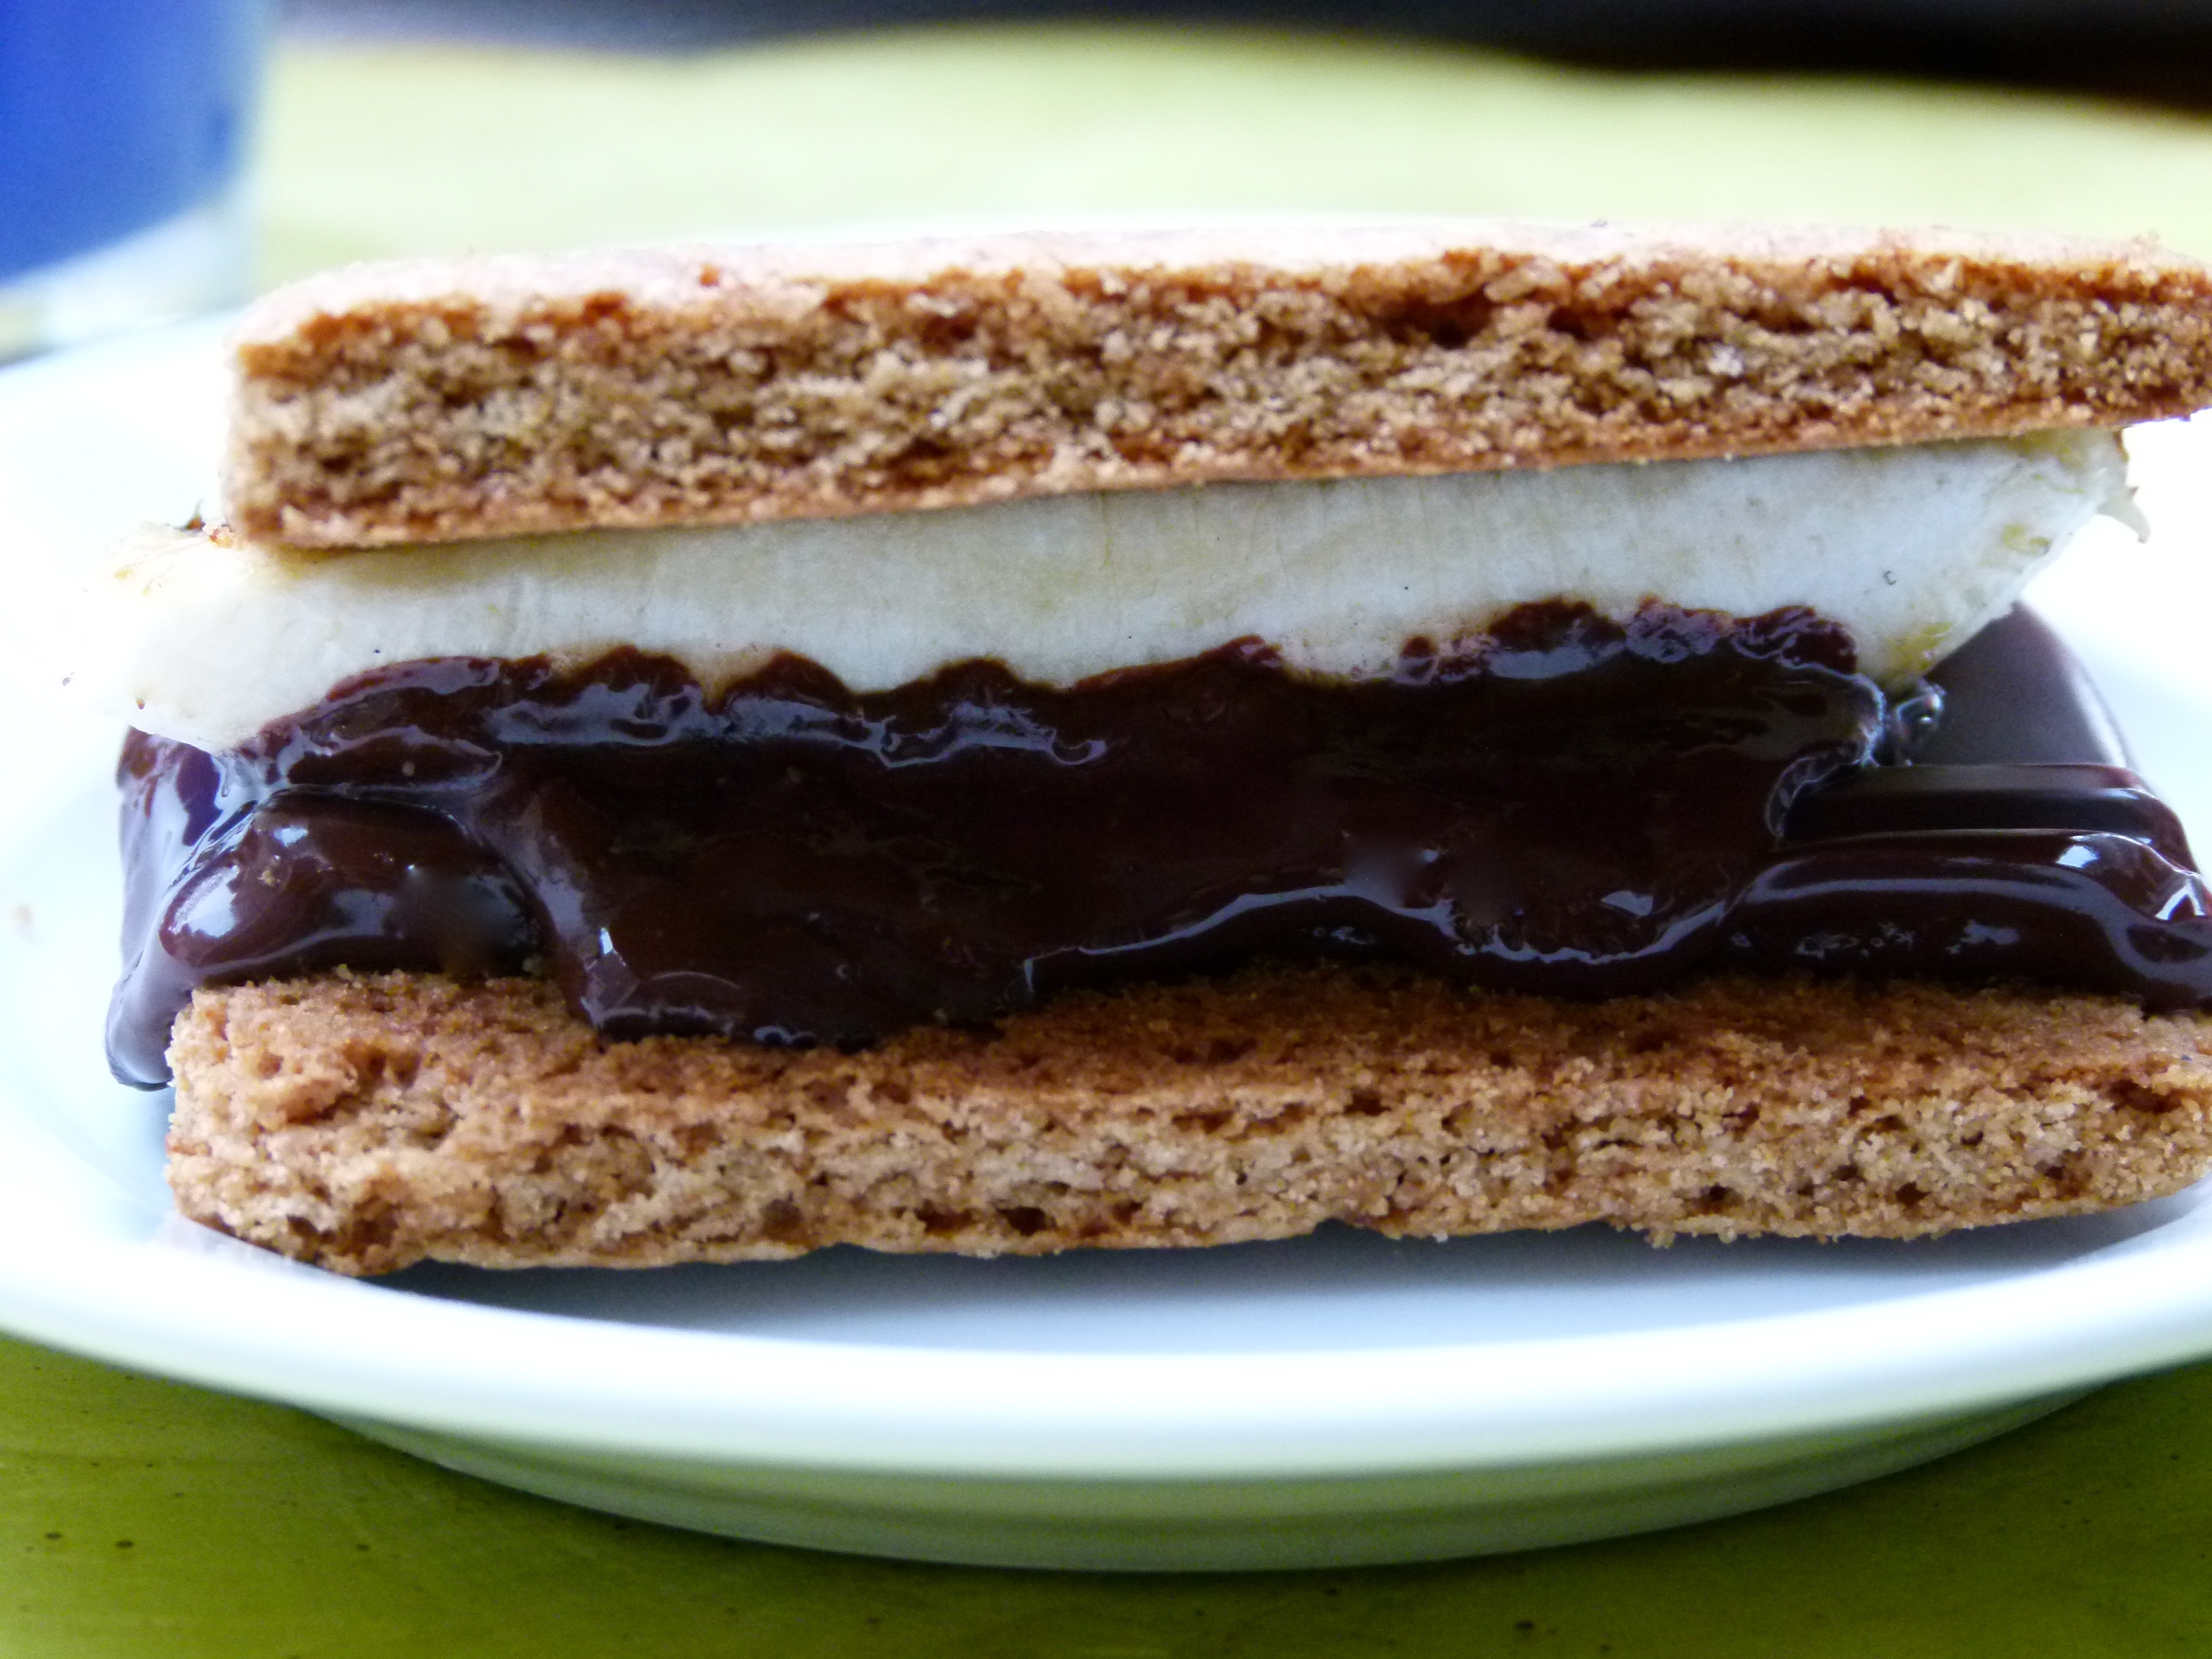 grilled banana s'mores recipe | Pamela Salzman & Recipes